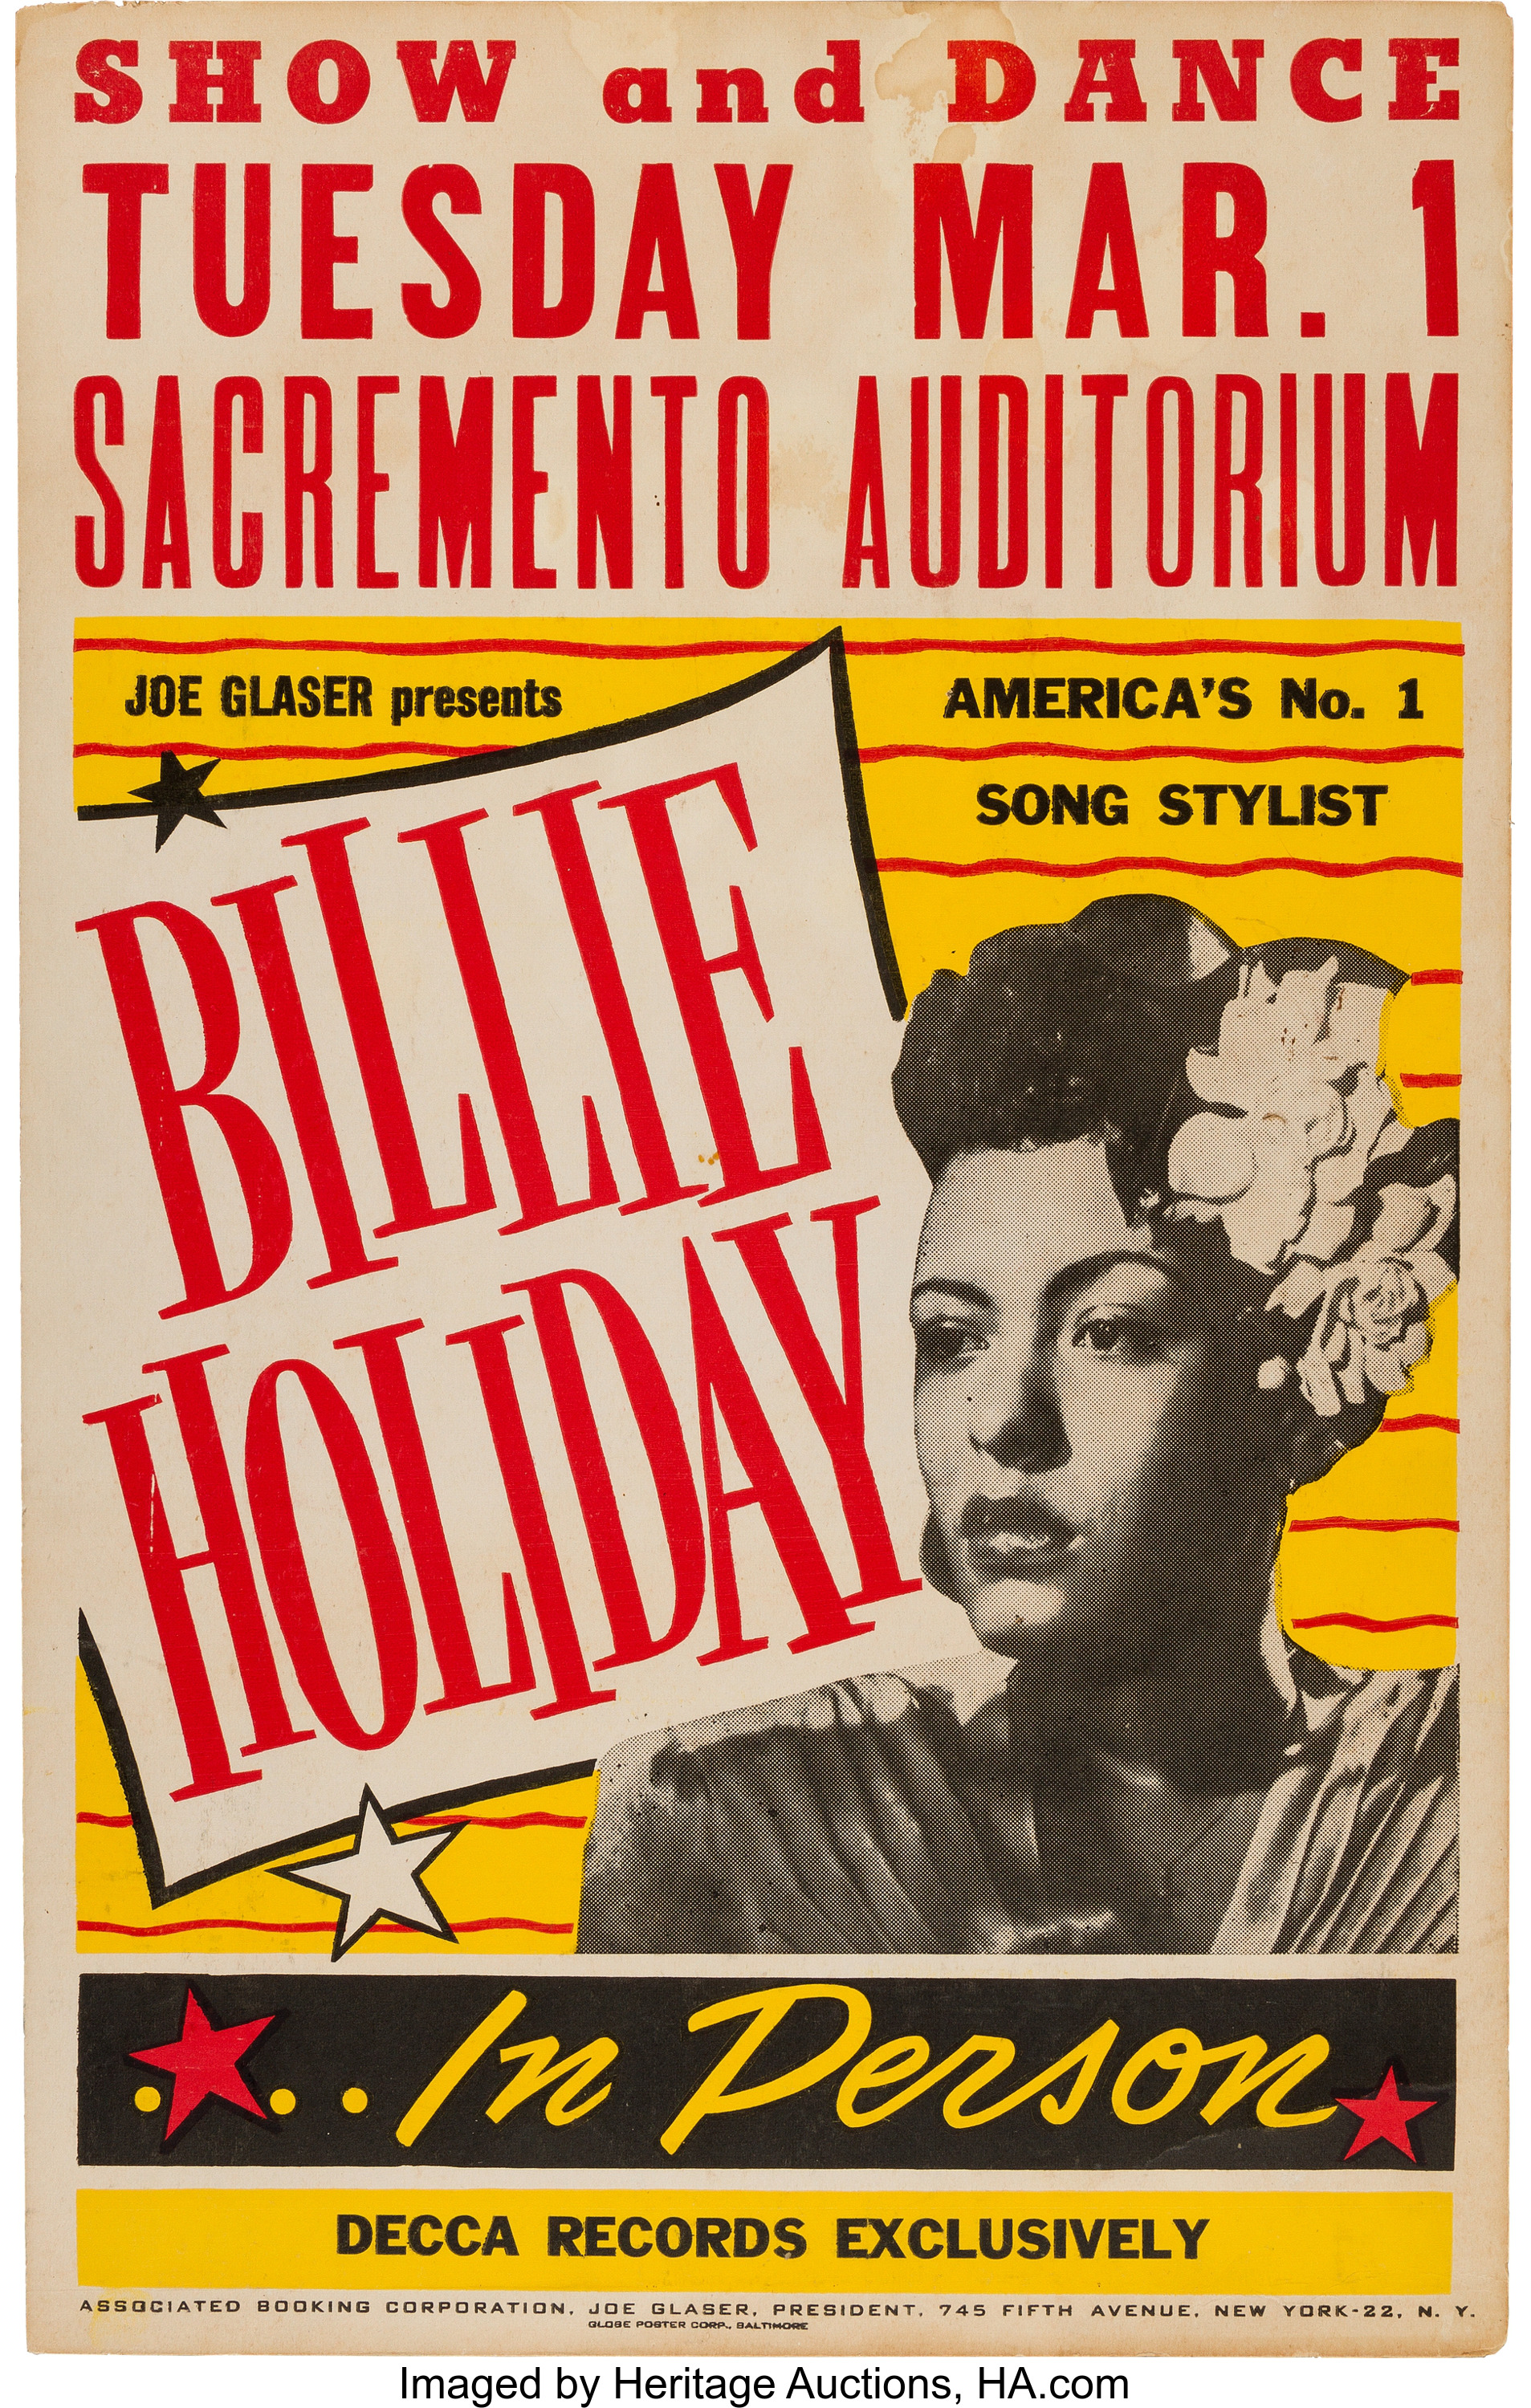 A vintage 1949 concert poster for jazz singer Billie Holiday.